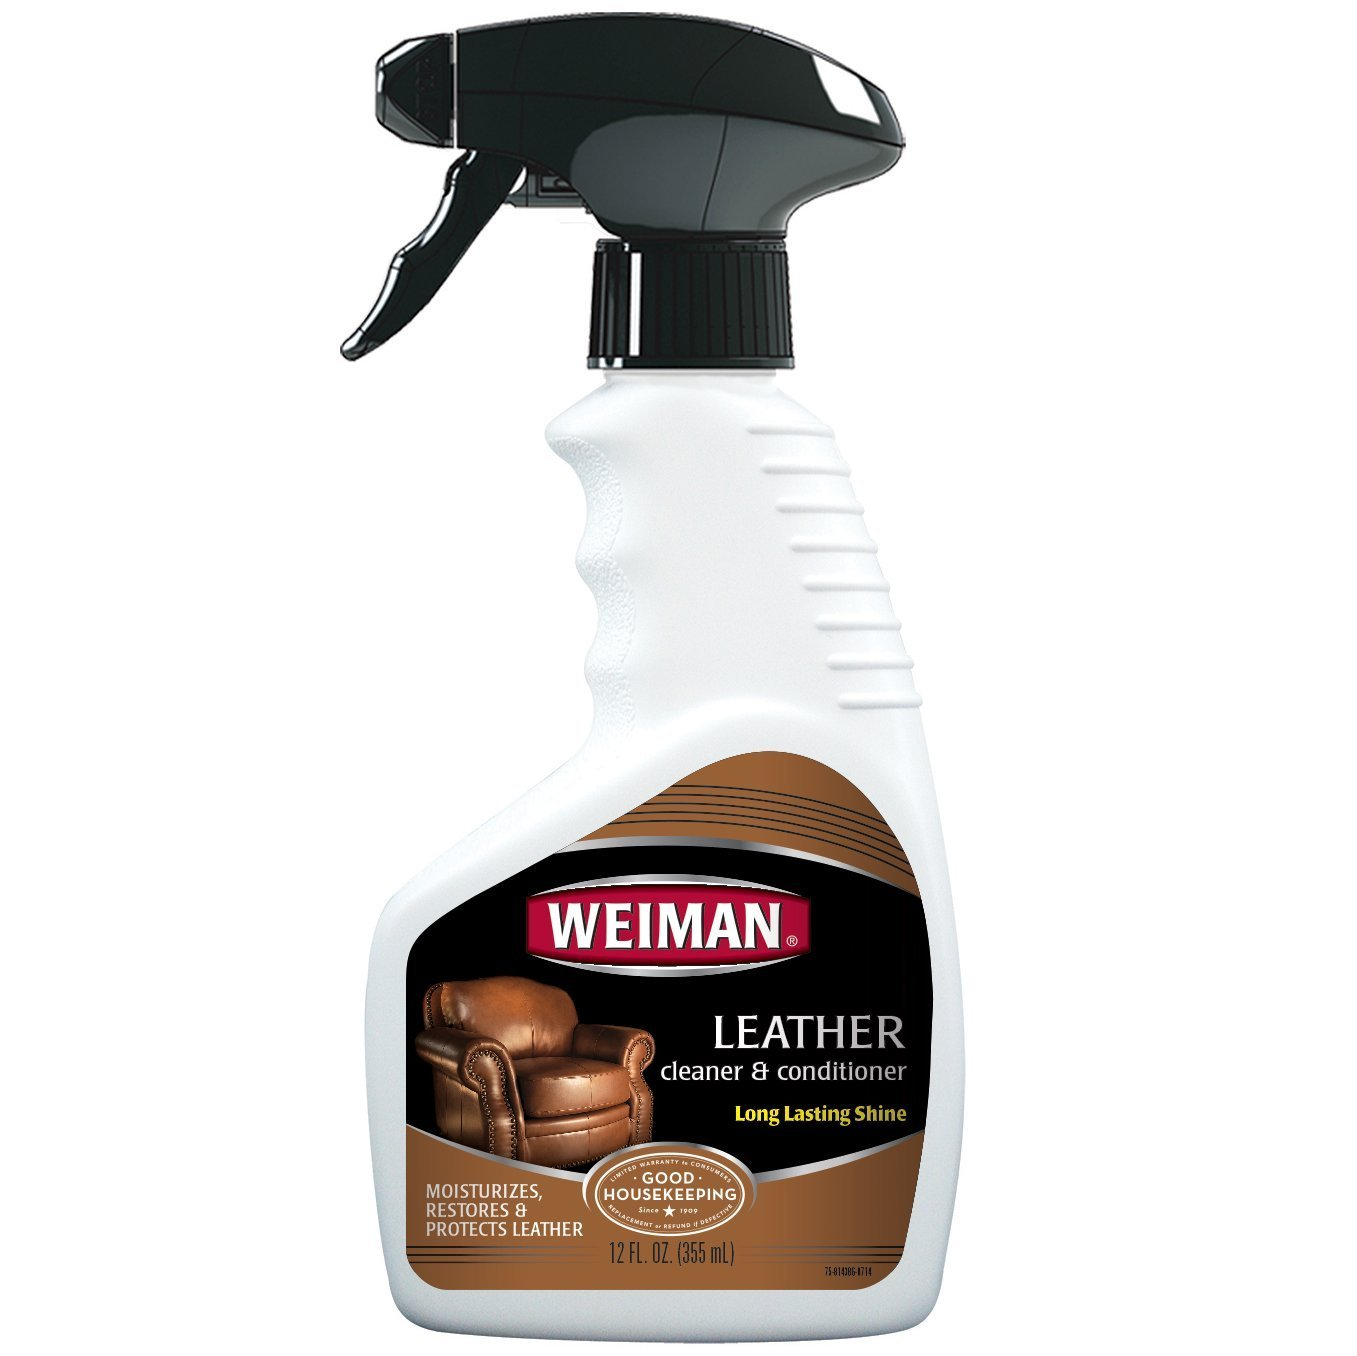 Weiman Leather Cleaner & Conditioner - Gentle Formula Cleans, Conditions and Restores Leather and Vinyl Surfaces